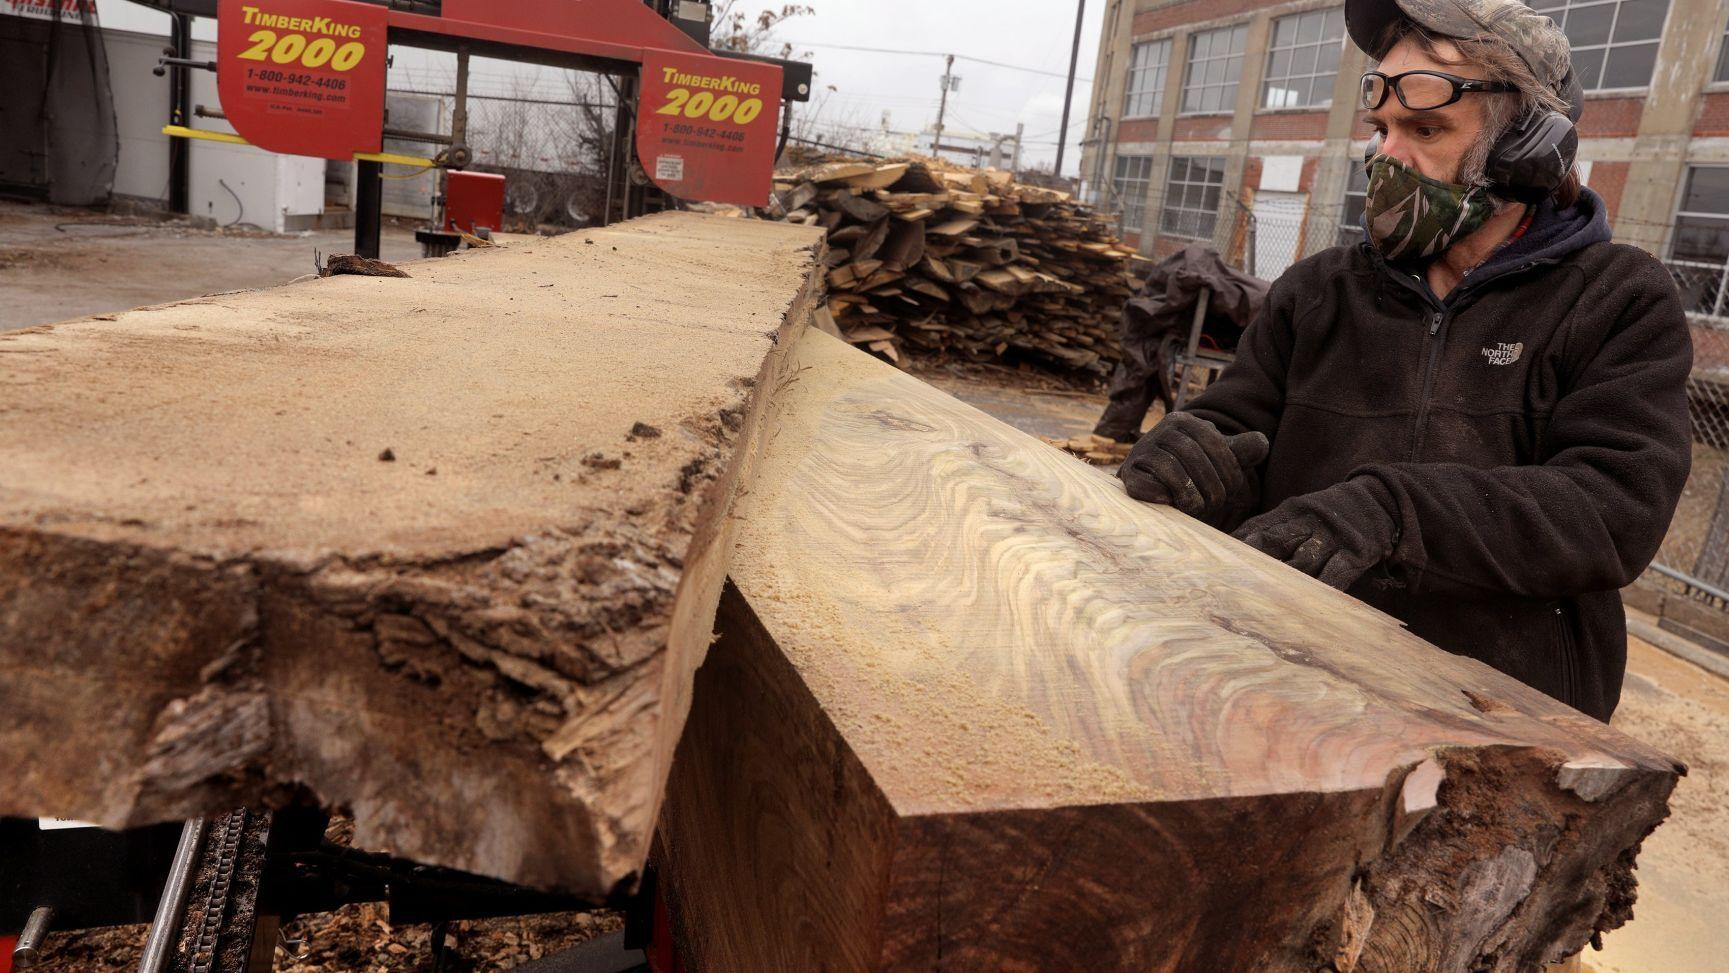 Going against the grain, company finds opportunity in logging 'St. Louis forest'